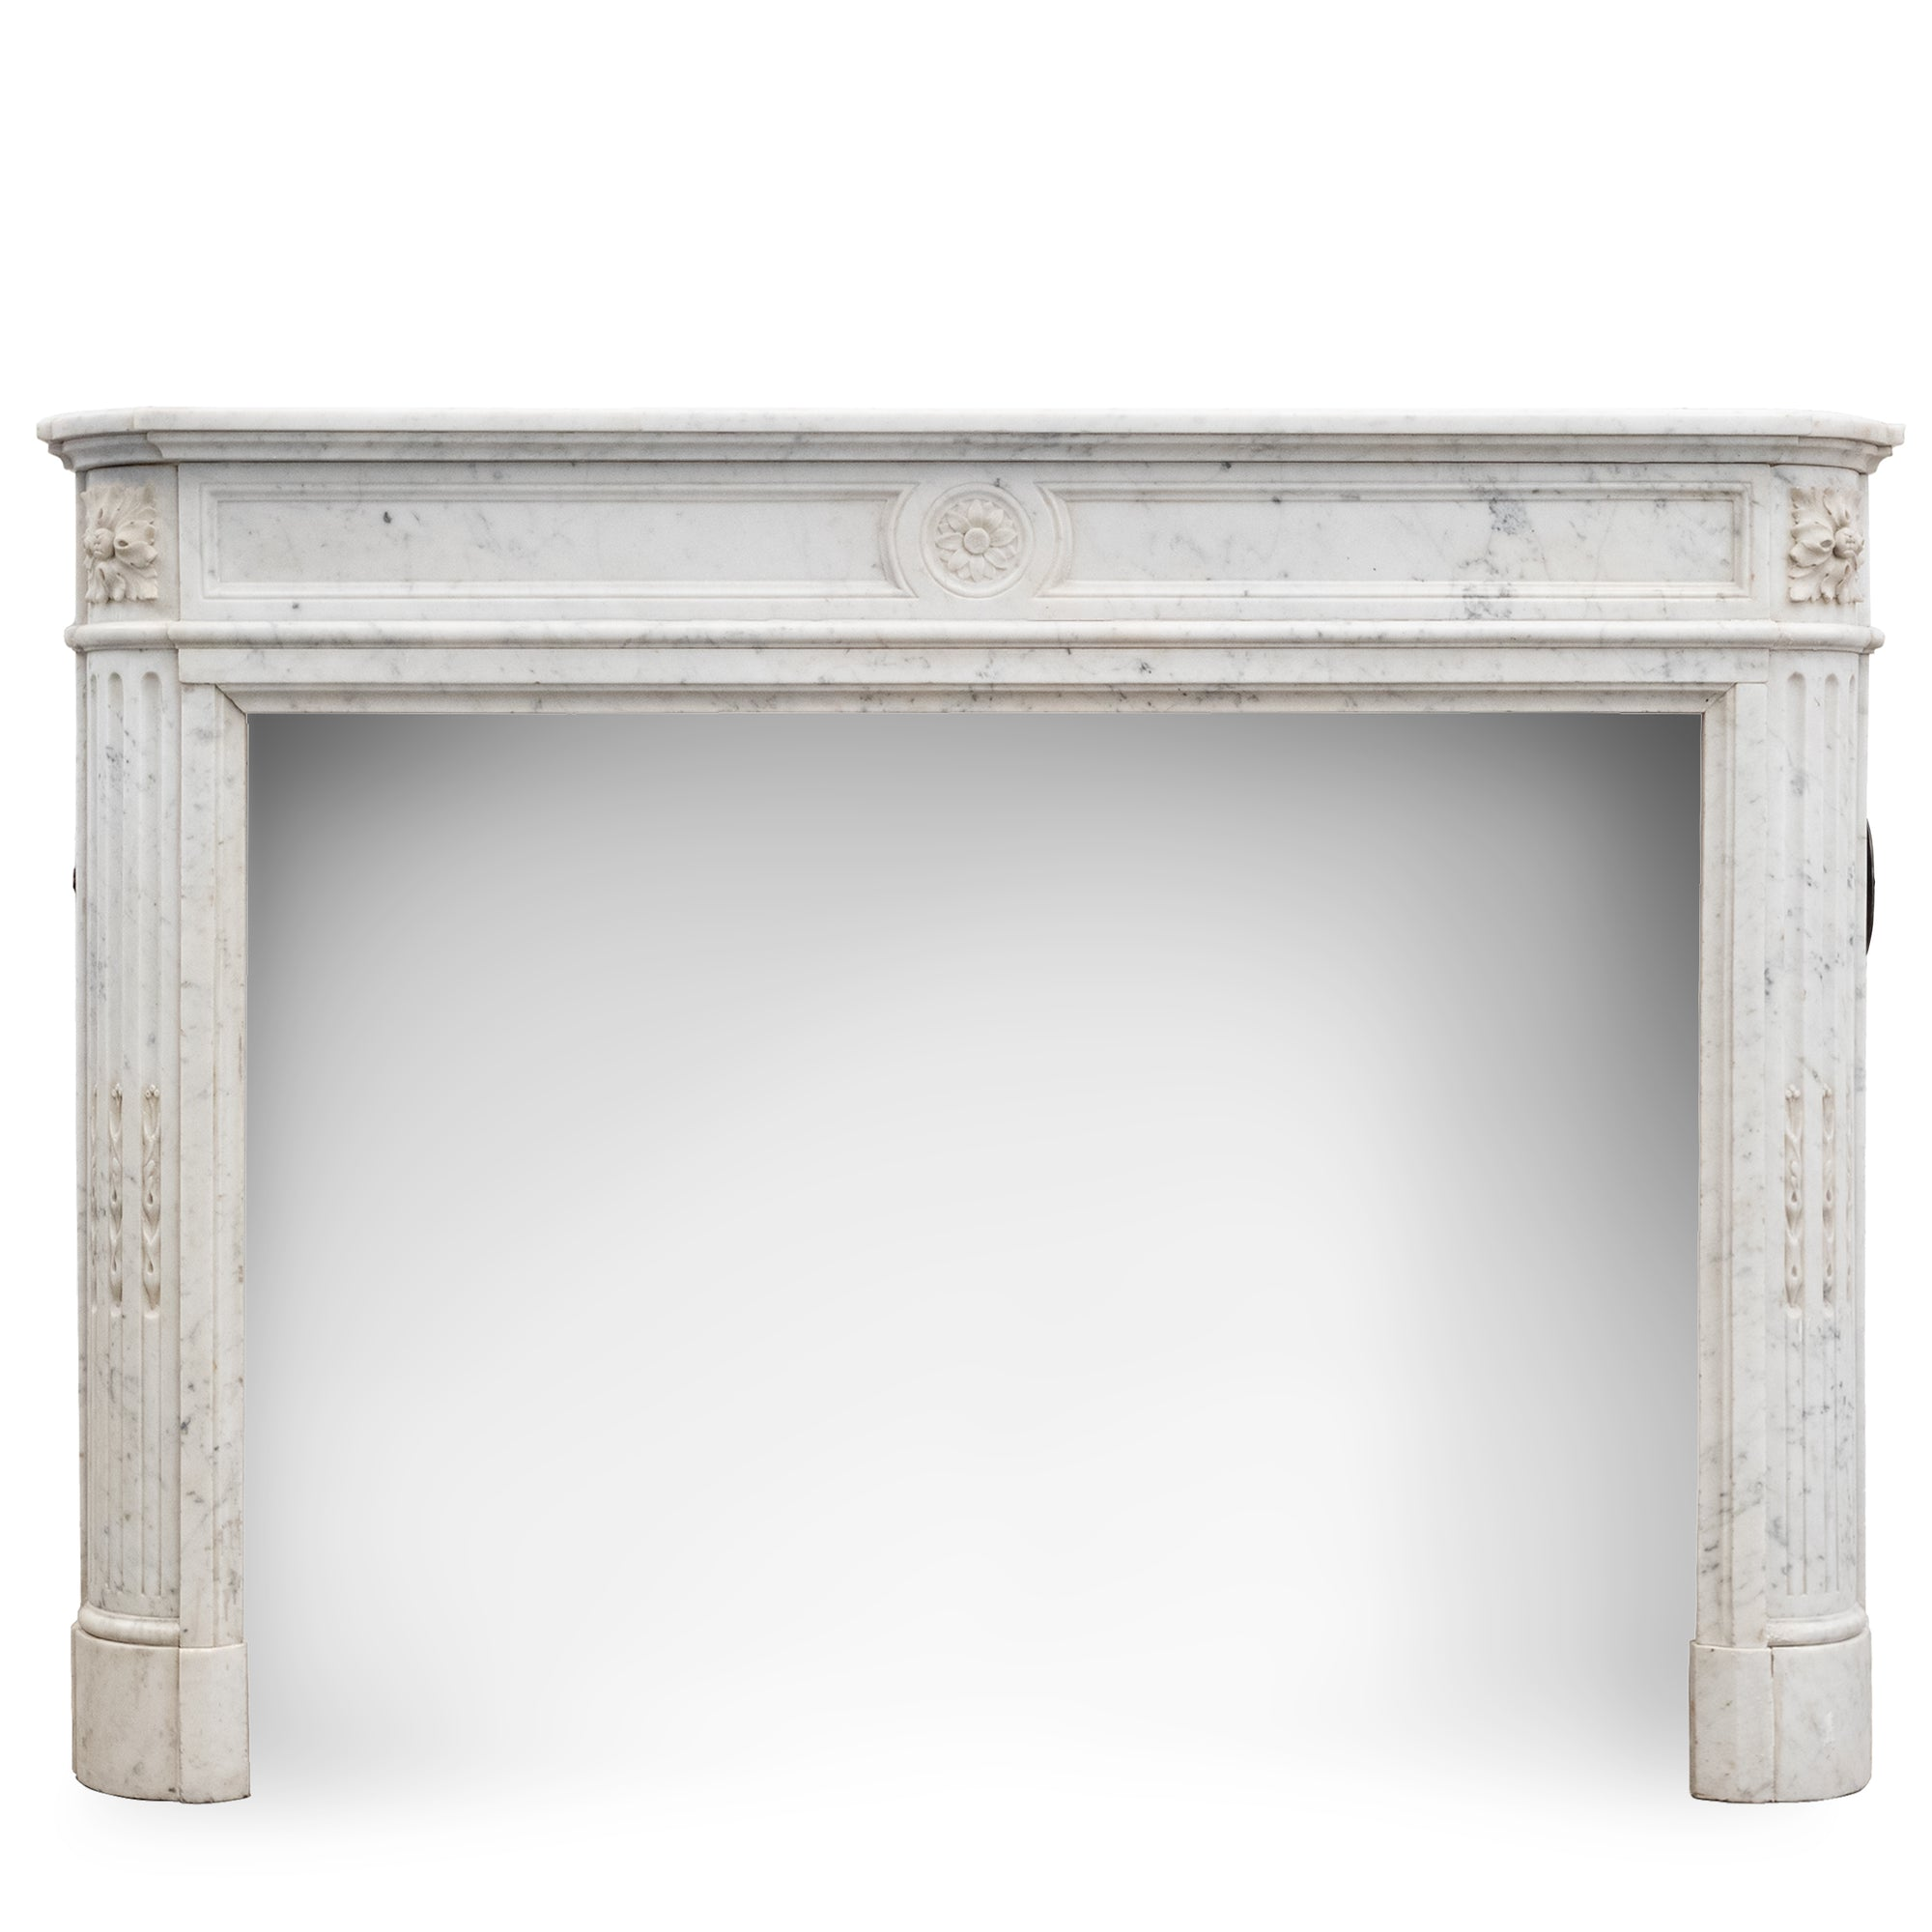 Antique Louis XVI Style Carved Marble Fireplace in Carrara Marble | The Architectural Forum